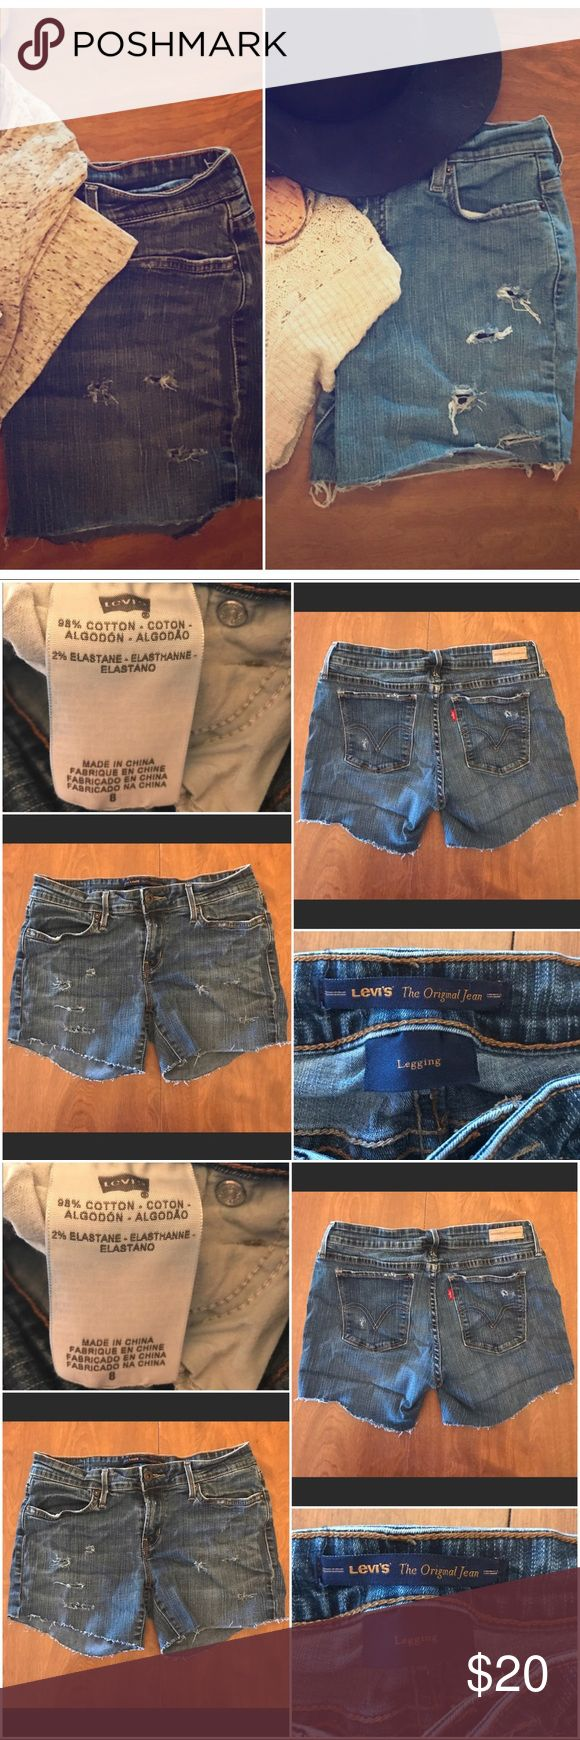 """Levi's Shorts Lot **HOMEMADE** two pairs of size 8 (fees like a 6) shorts, with an inseam of about 2.5"""". From a 🐶 friendly home. Levi's Shorts Jean Shorts"""